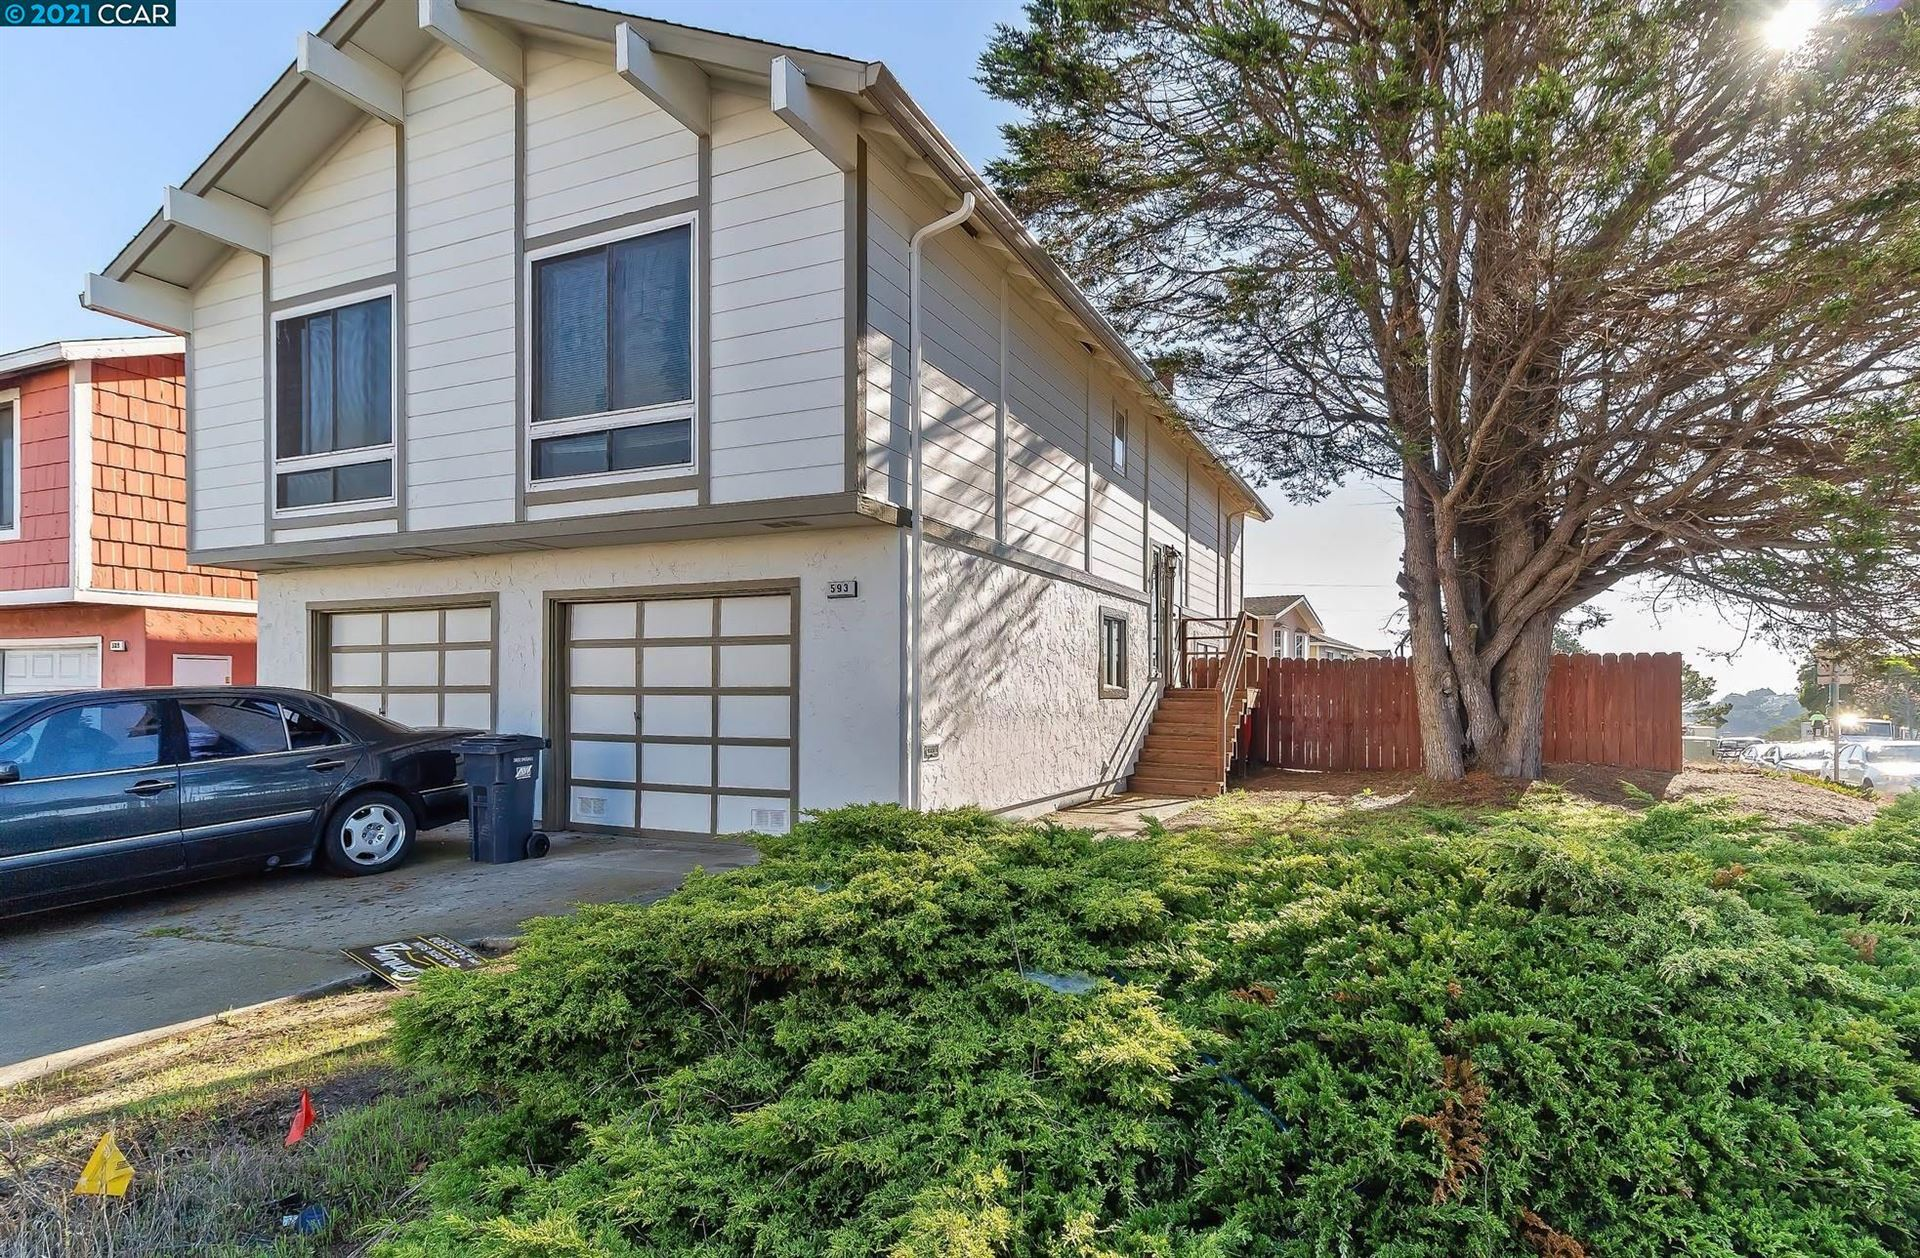 593 King Dr, Daly City, CA 94015 - MLS#: 40972270